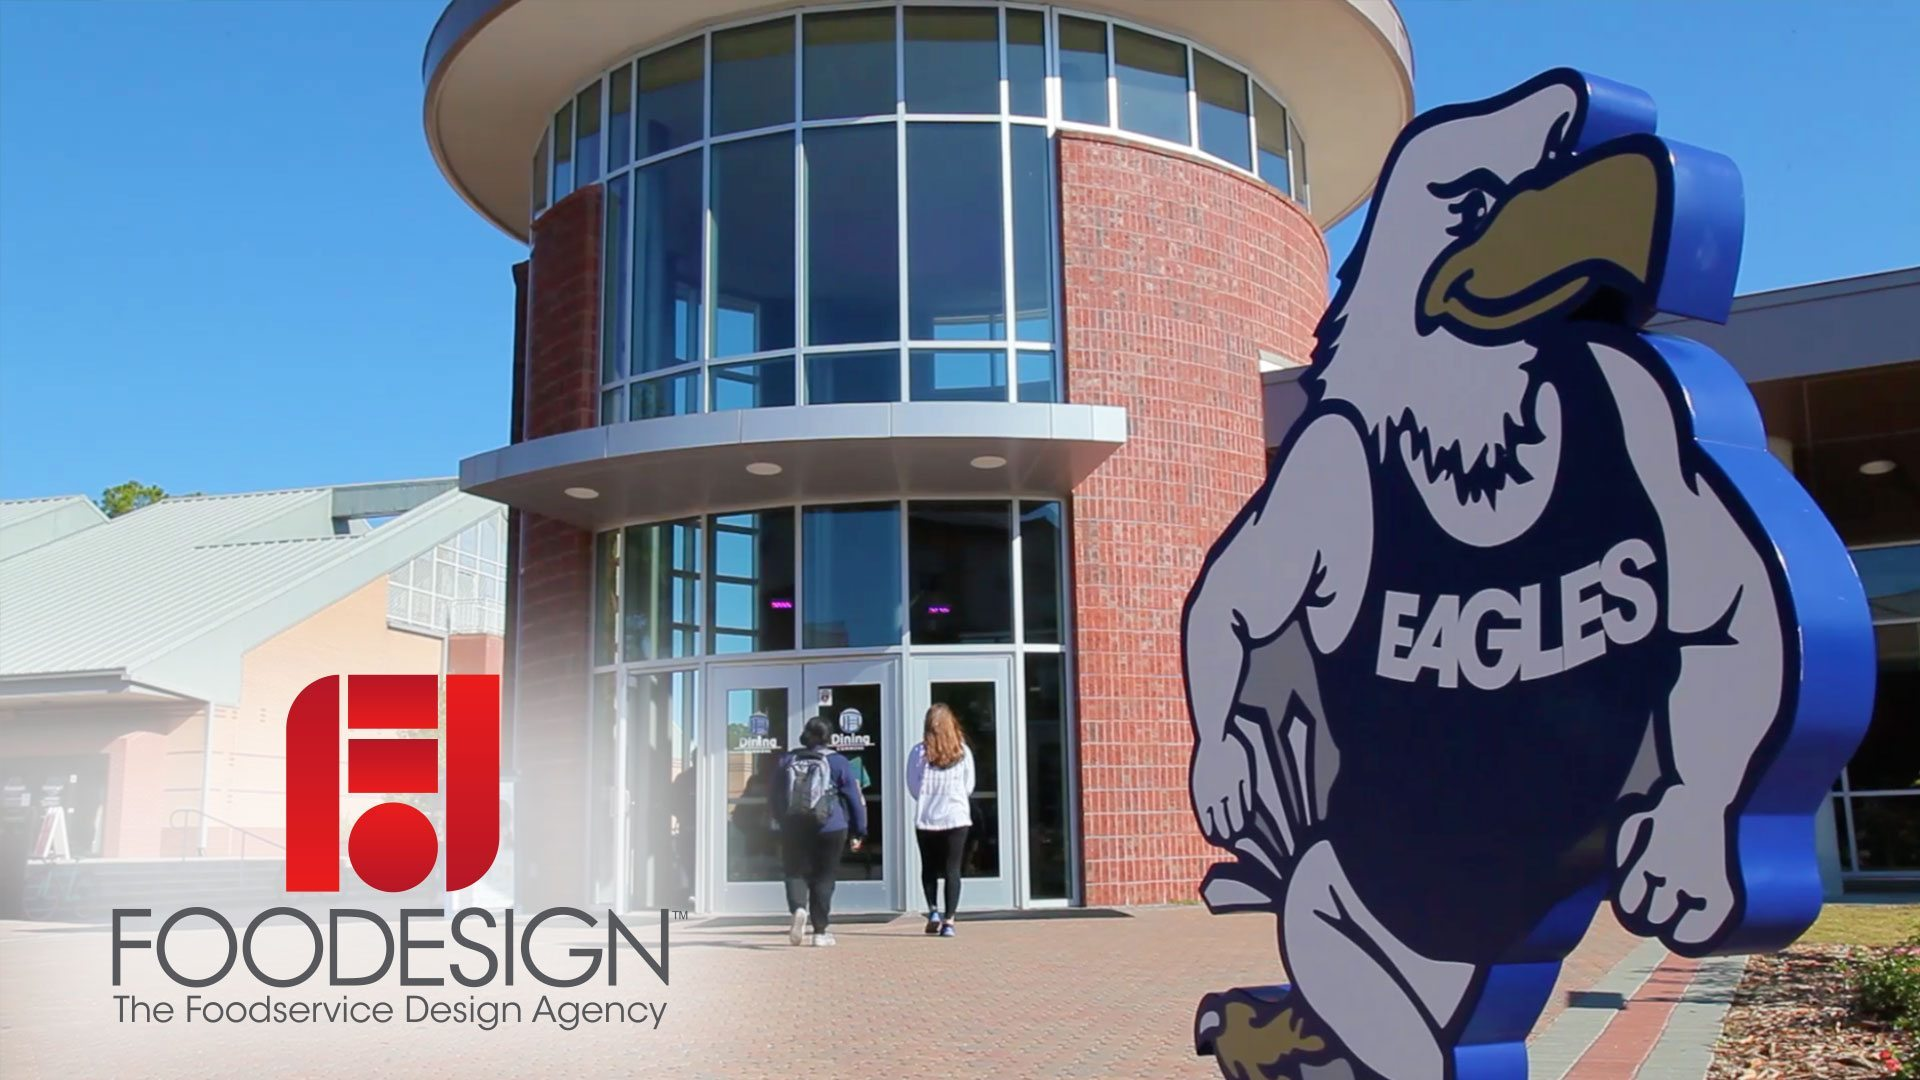 Foodesign interviews staff at Georgia Southern University dining